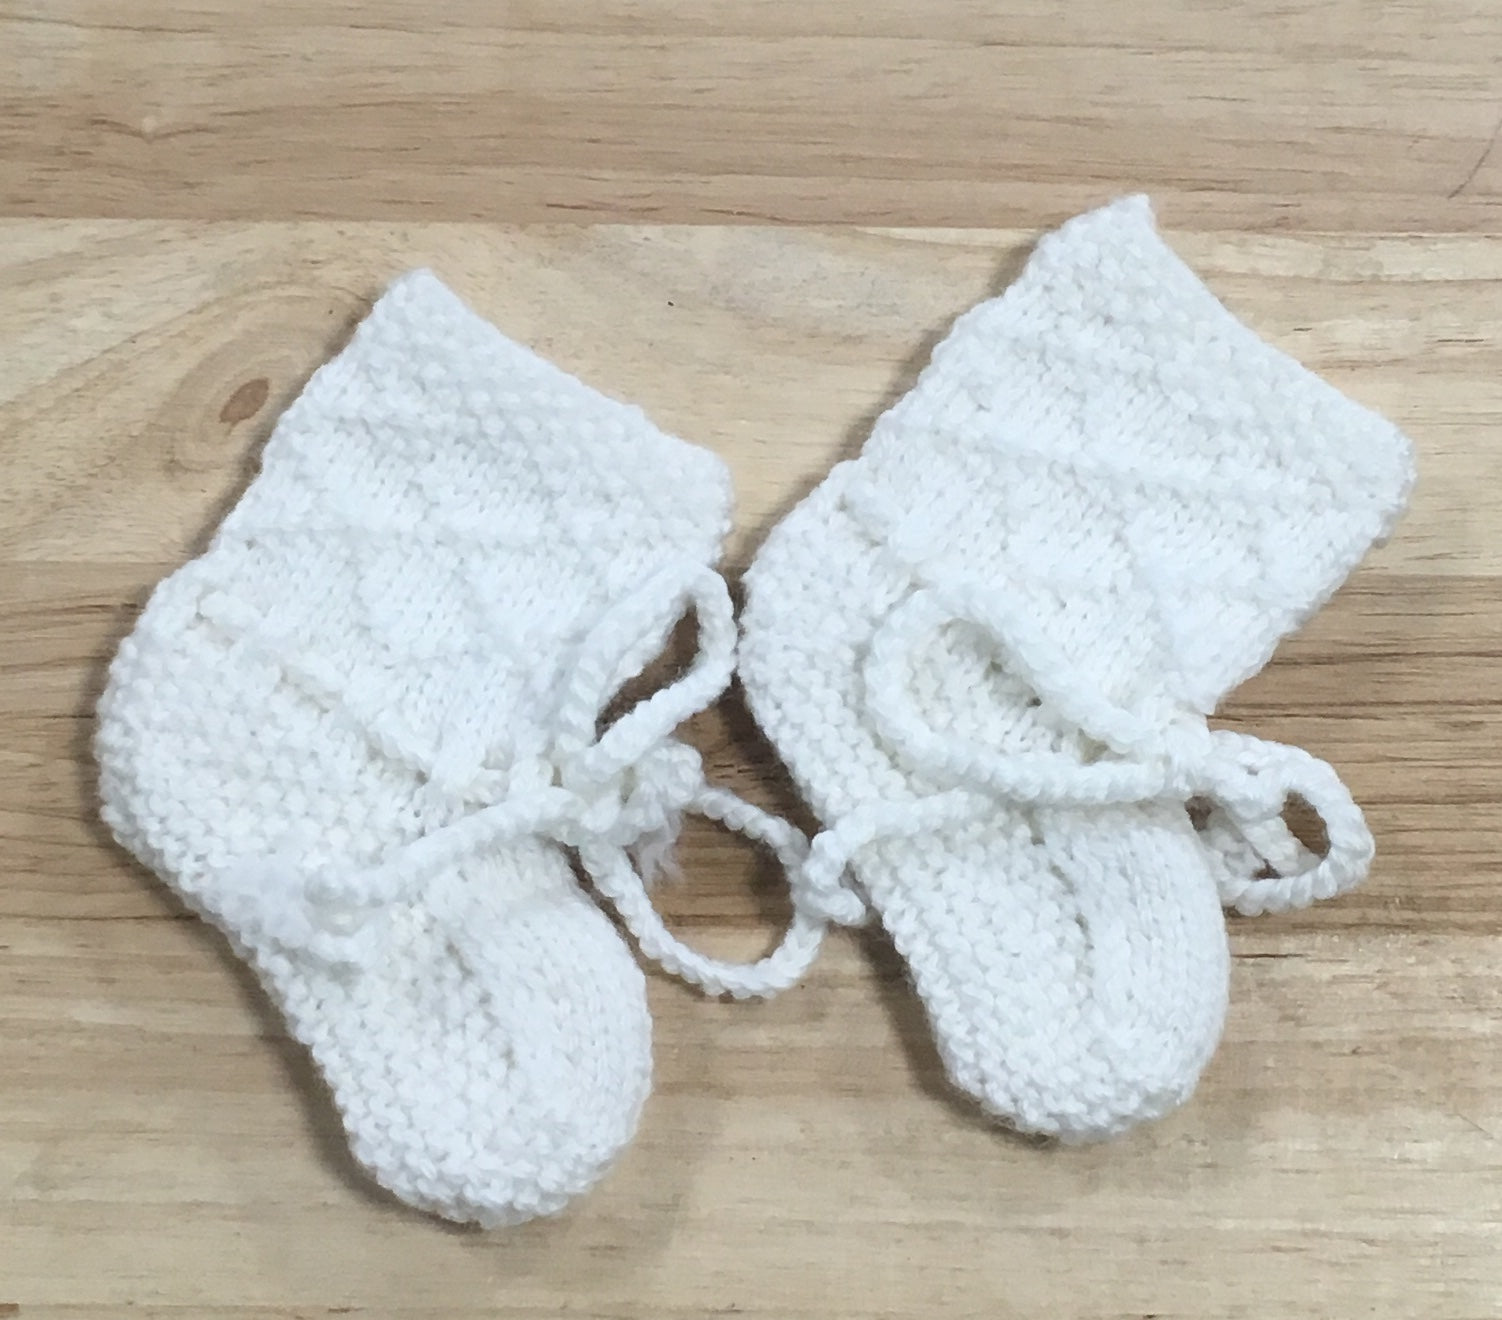 White with Diamond Pattern Merino Wool Booties - 0 - 3 months